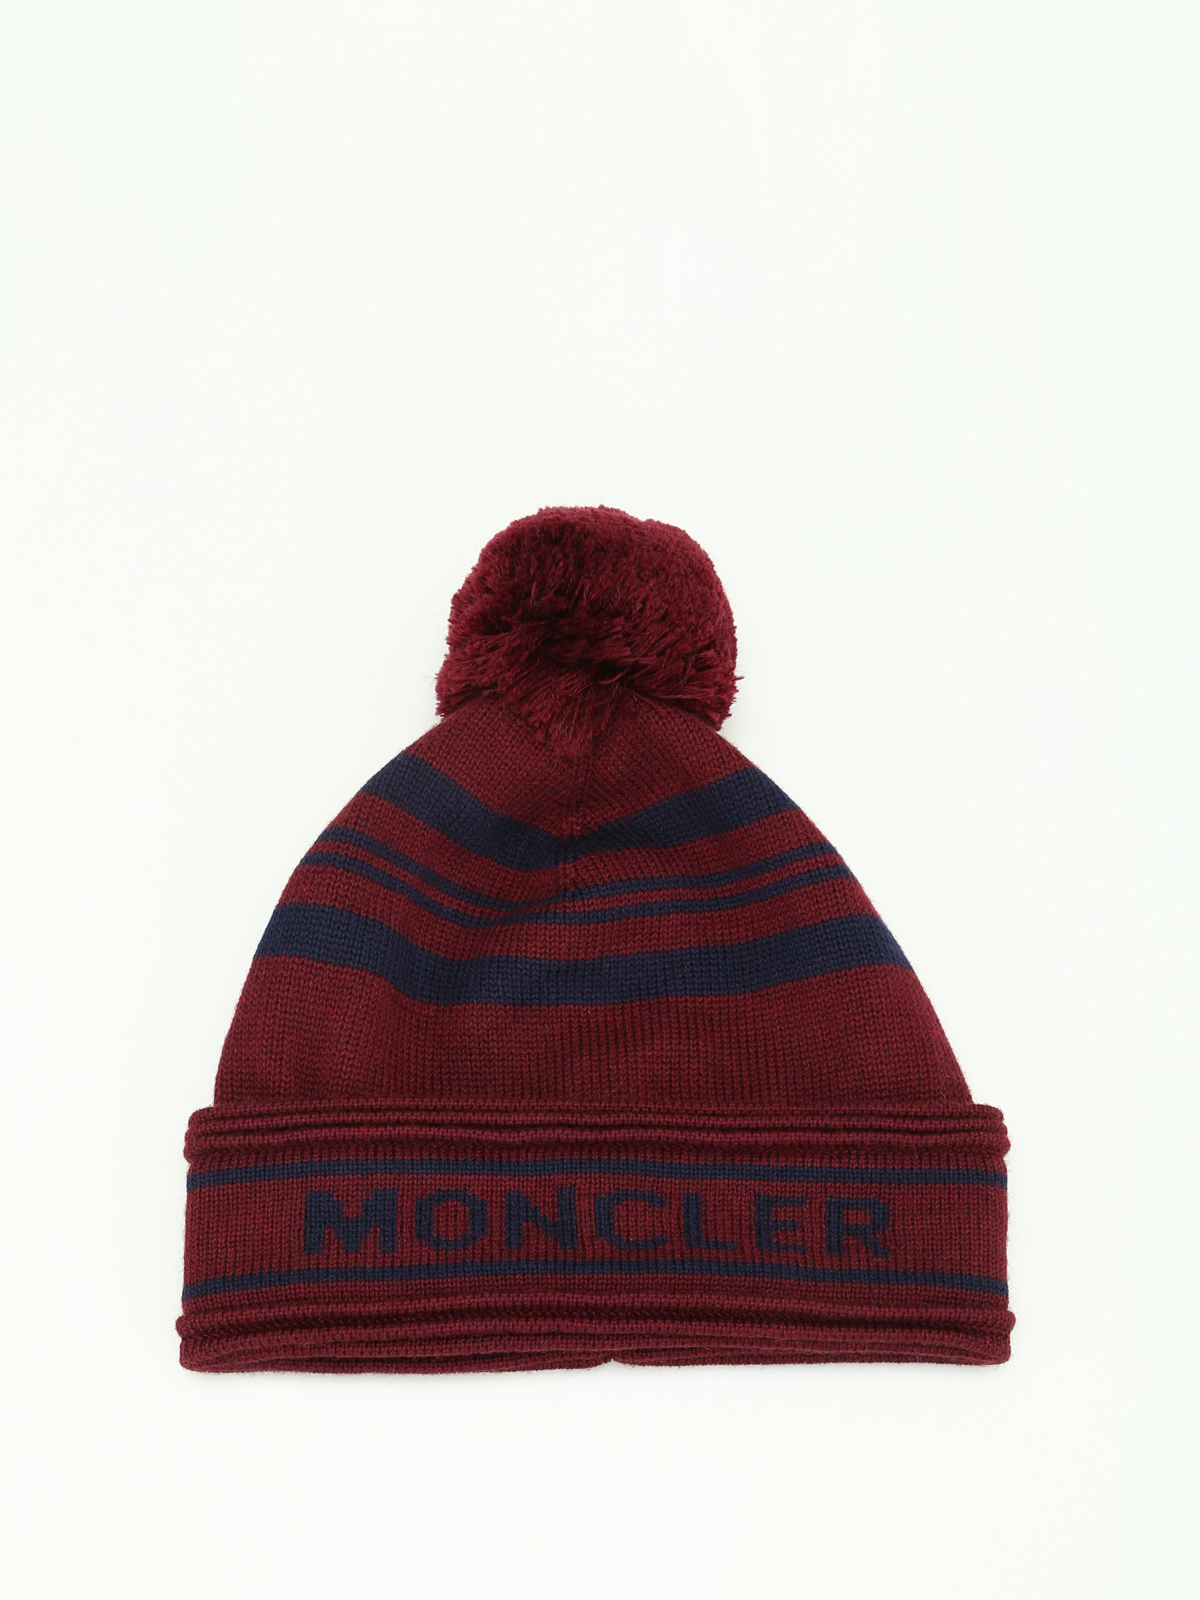 f9080e1bab6 Moncler - Striped virgin wool beanie - beanies - C2 091 0090700 ...